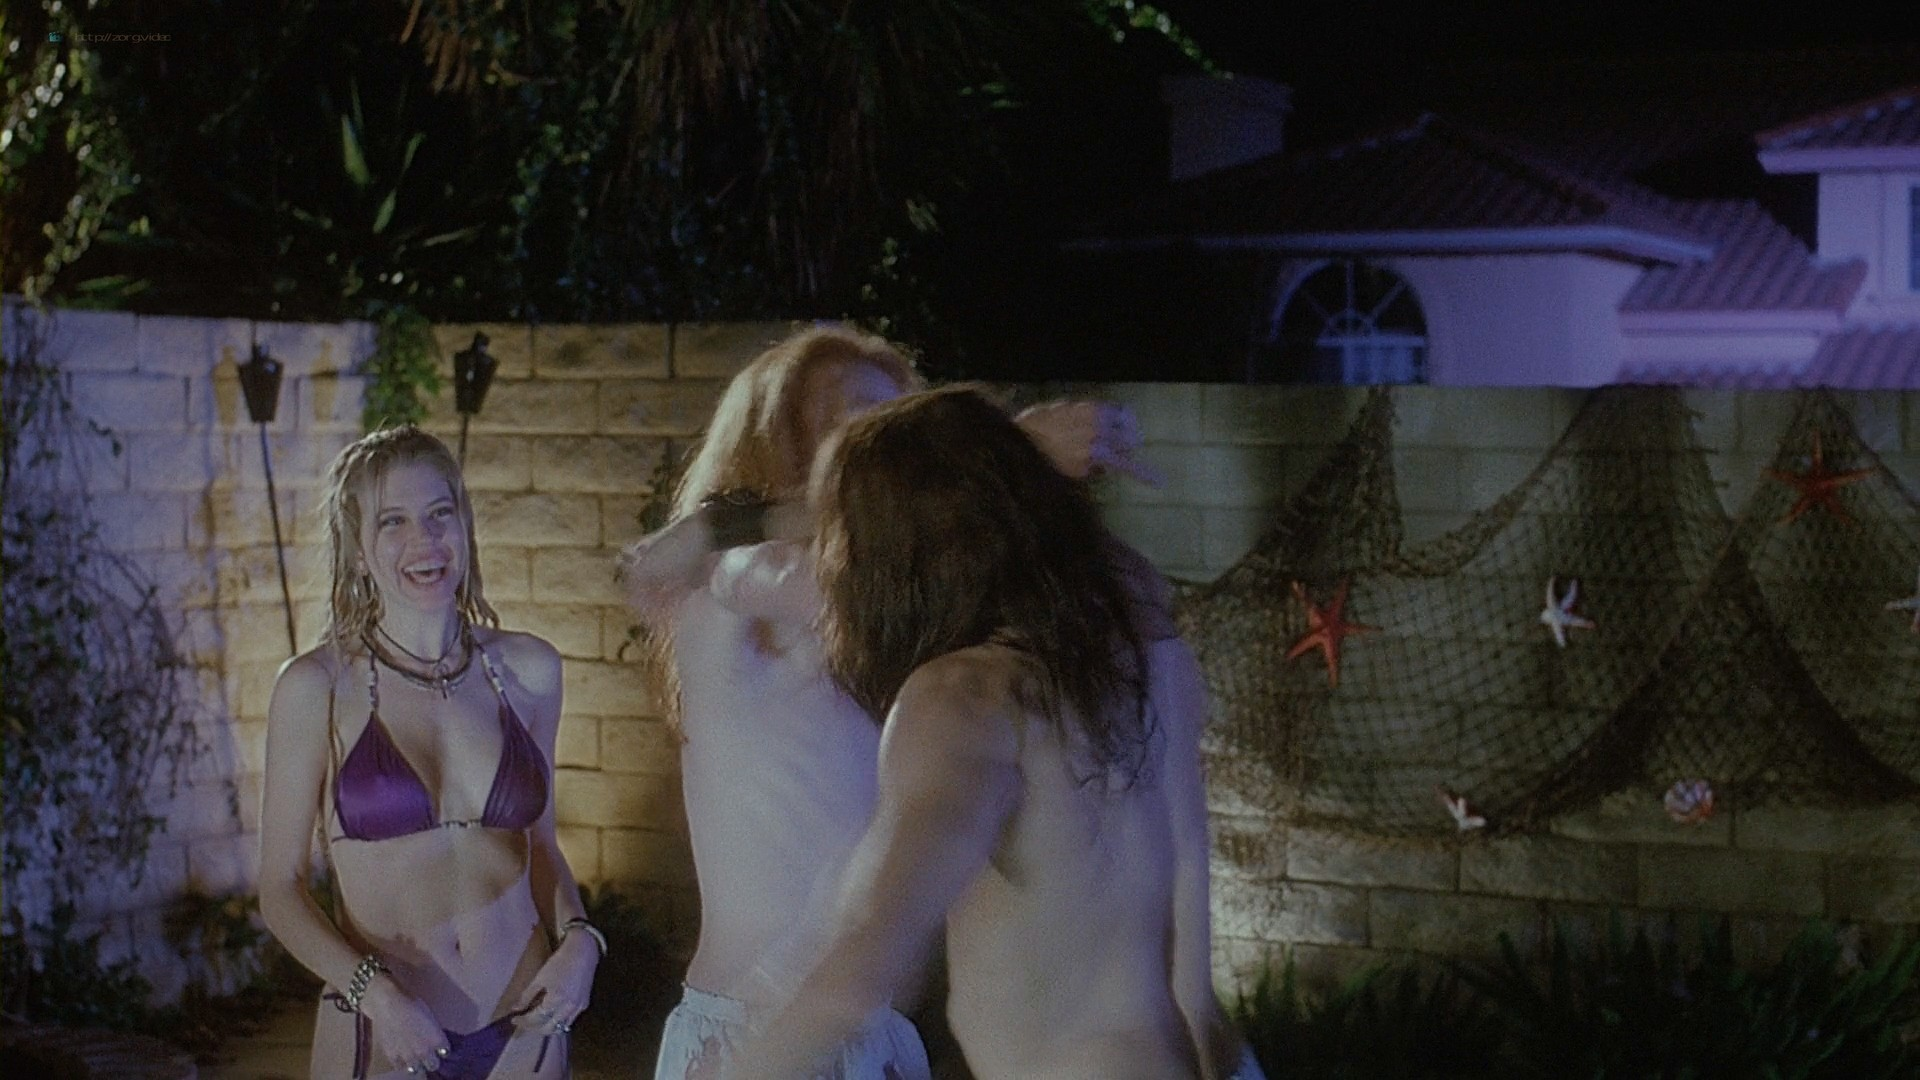 Renee Griffin nude topless - The Stoned Age (1994) 1080p Web (11)